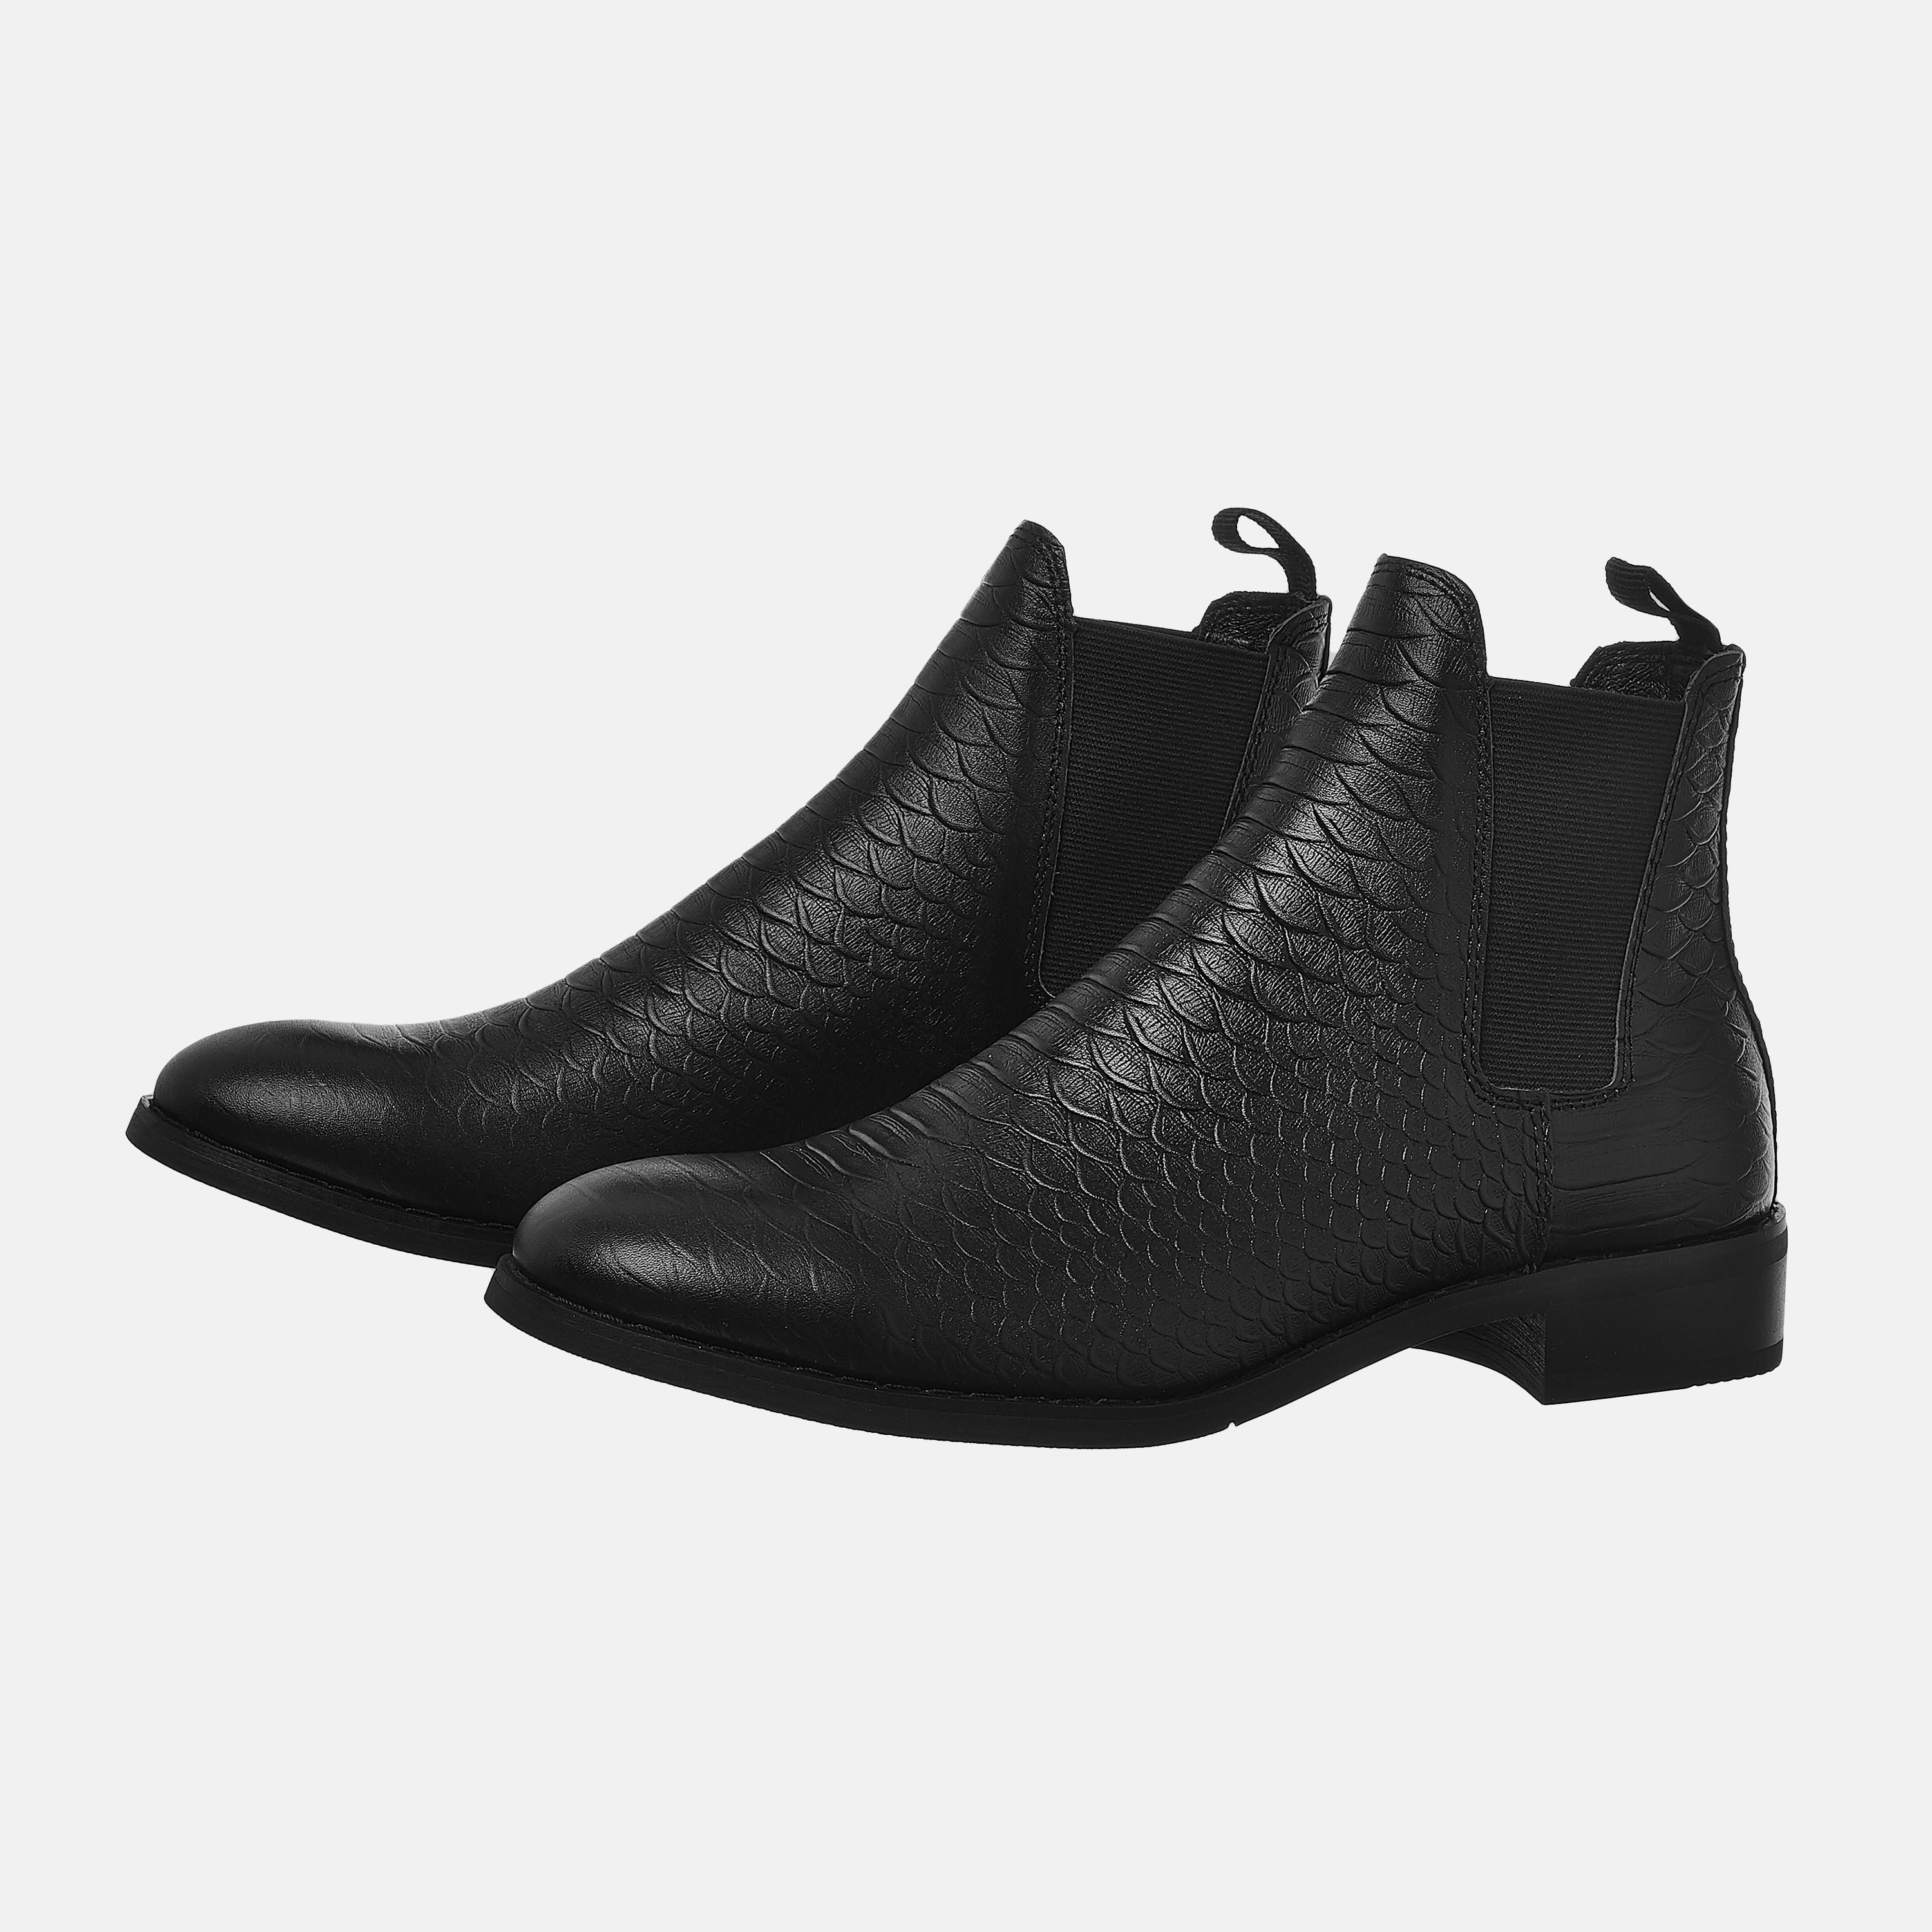 The Wild Chelsea Boots In Black The Wild Chelsea Boots In Black 1 1